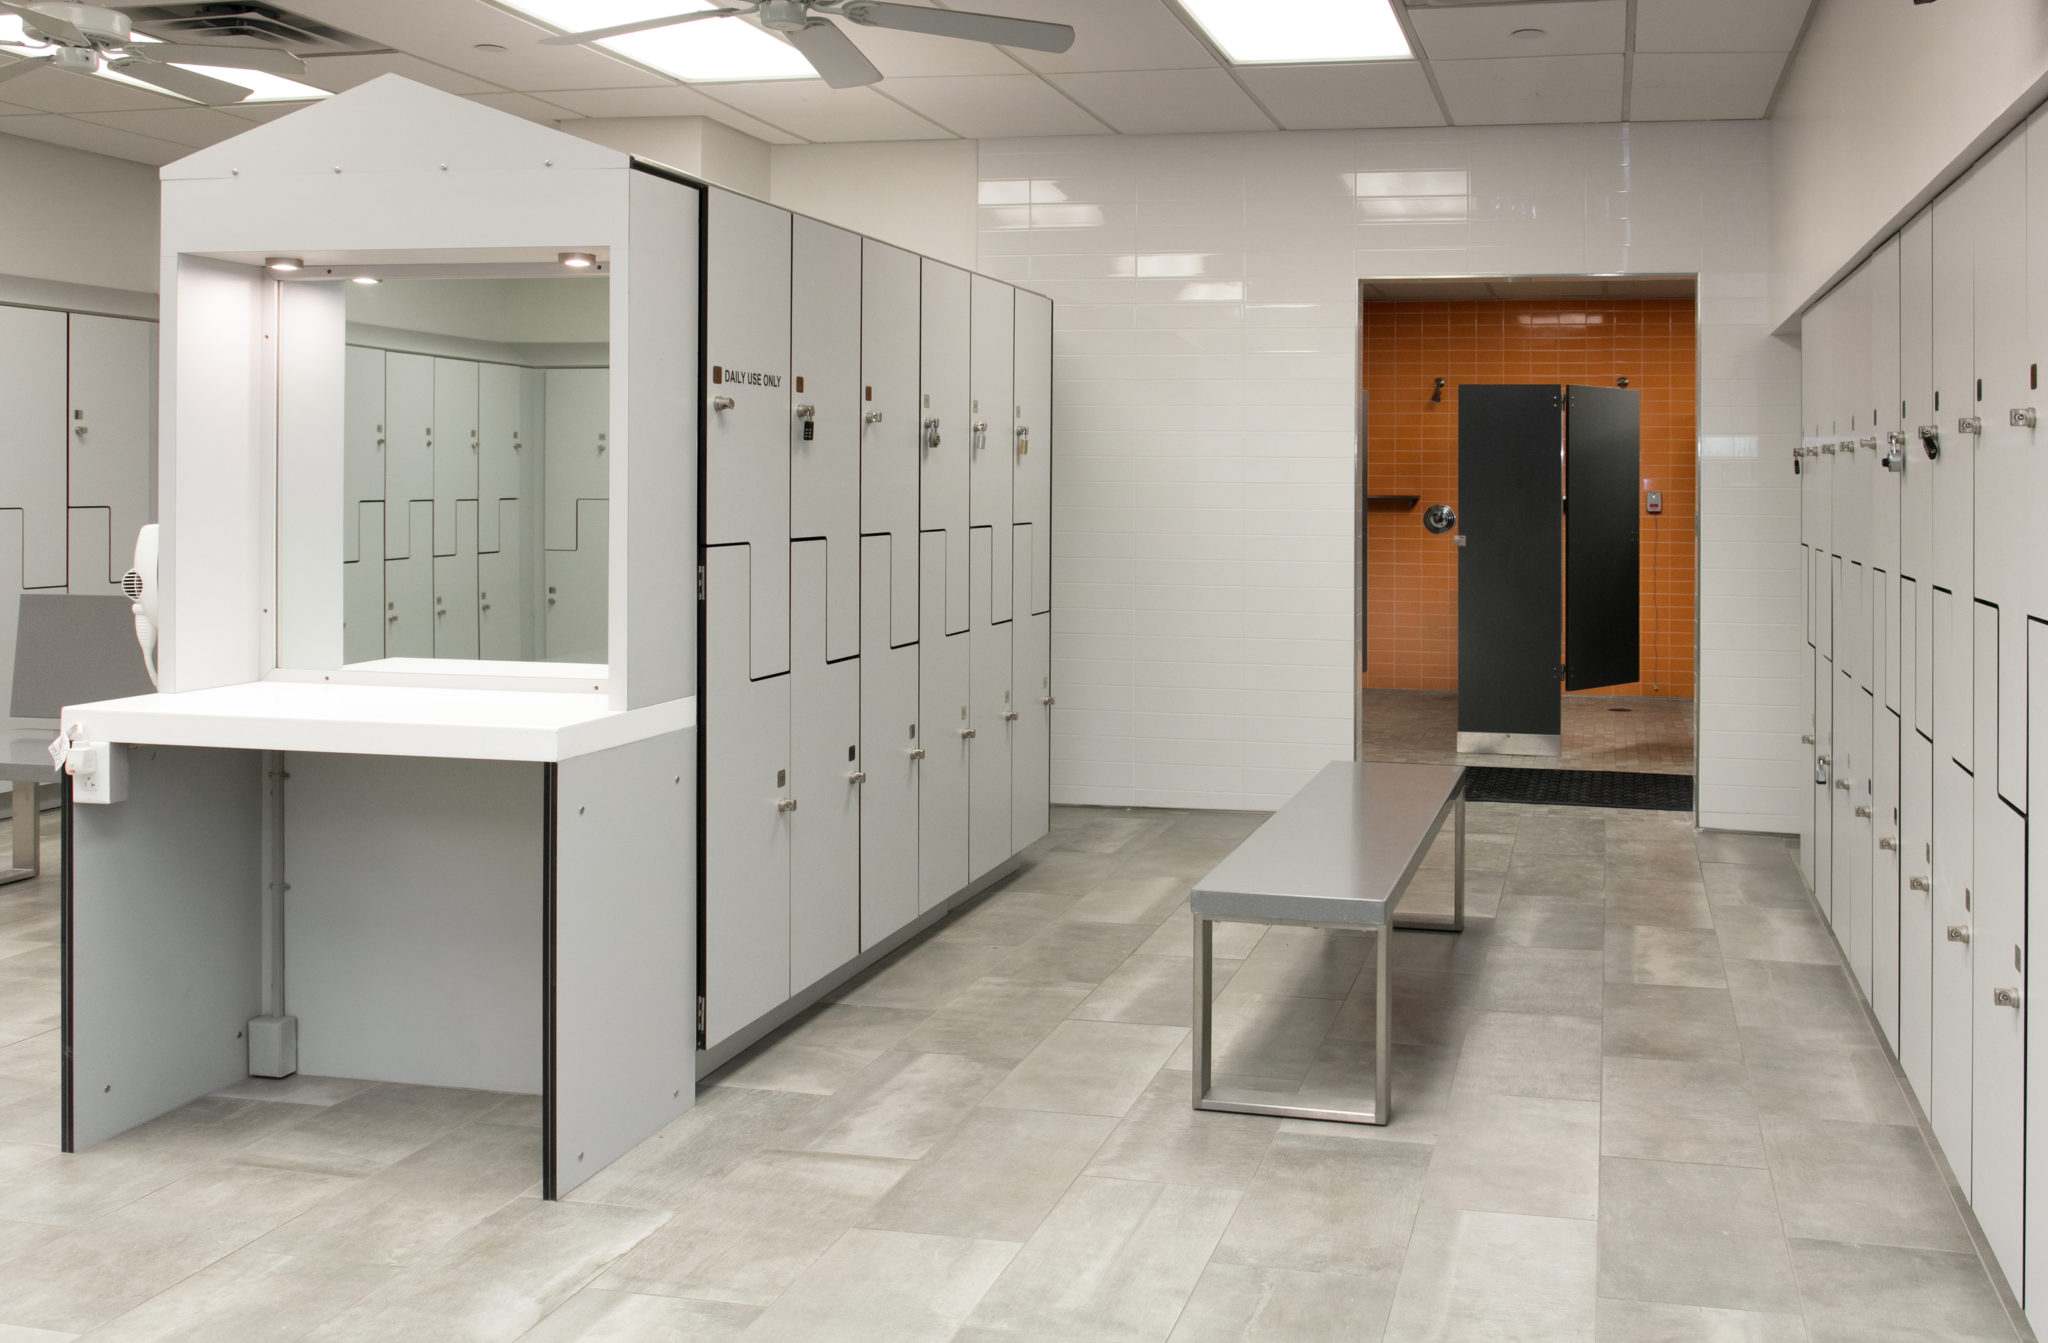 LifeStyle Centre Locker Rooms